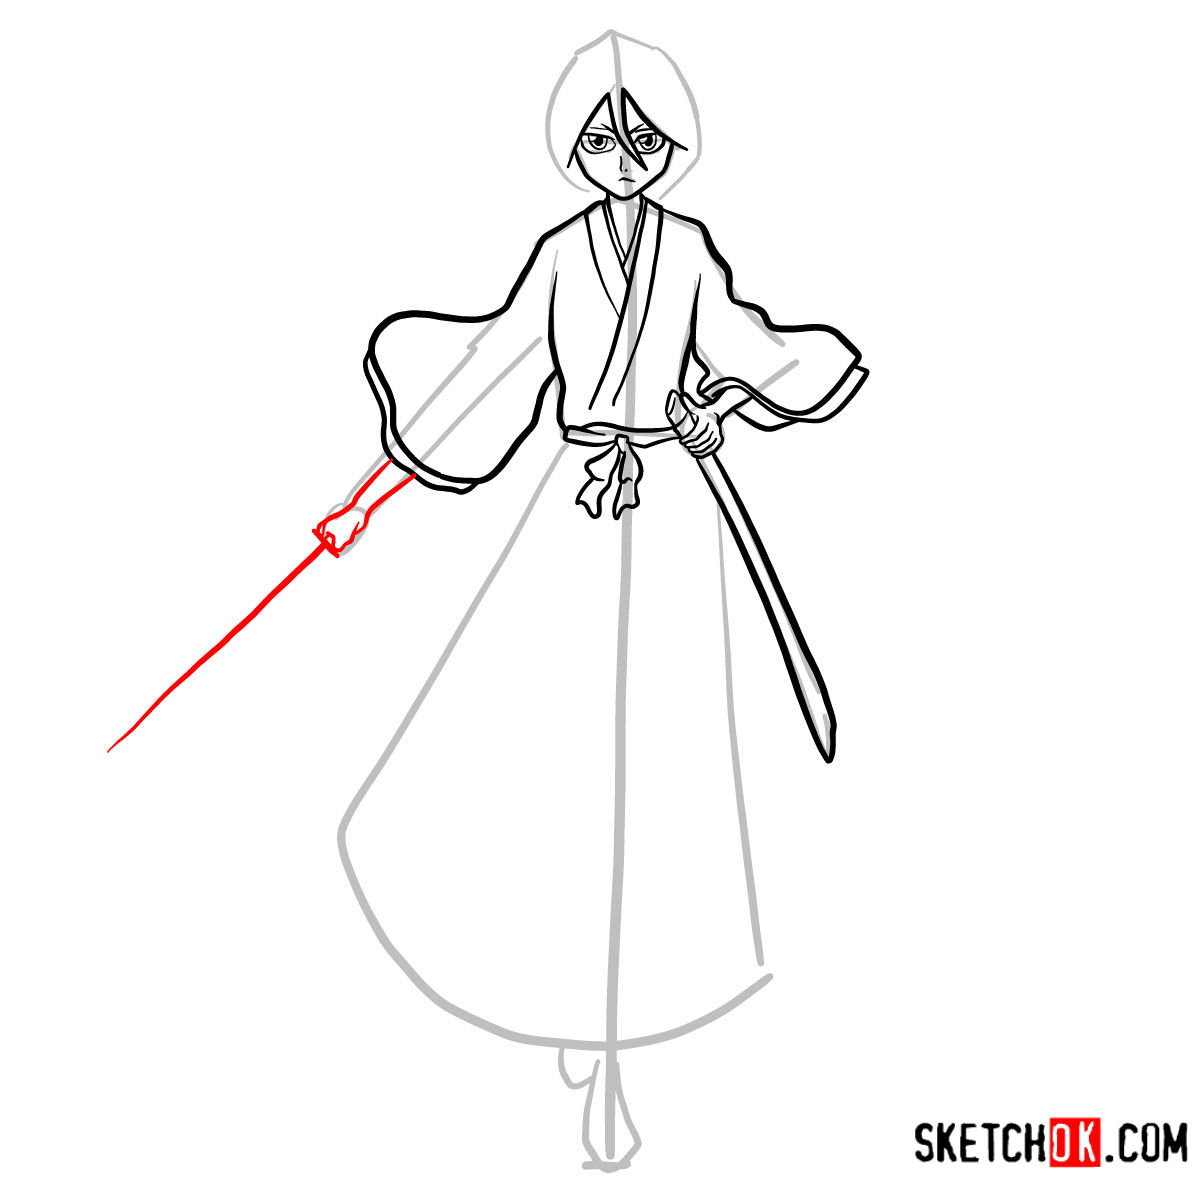 How to draw Rukia Kuchiki full growth | Bleach - step 12